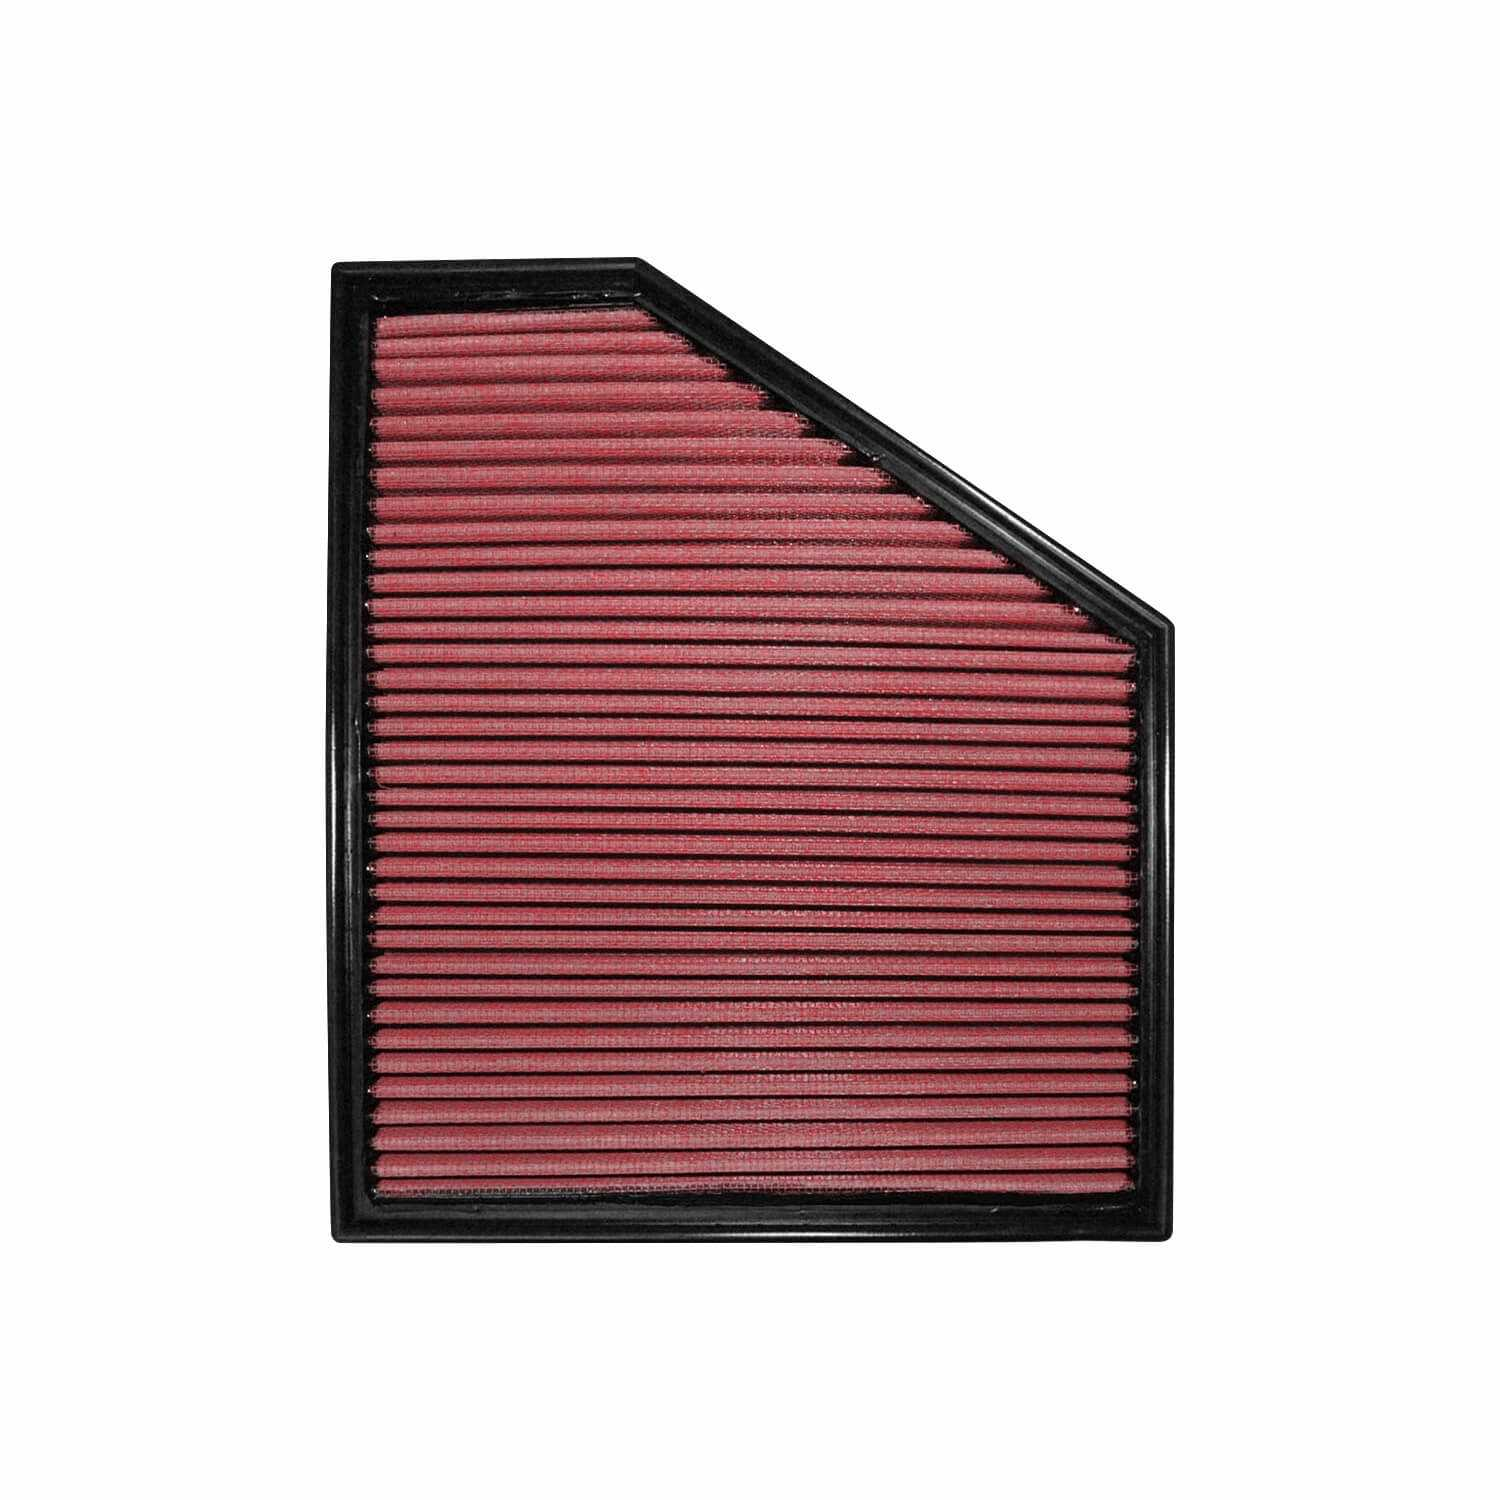 615025 Flowmaster Delta Force®Cold Air Intake Filter